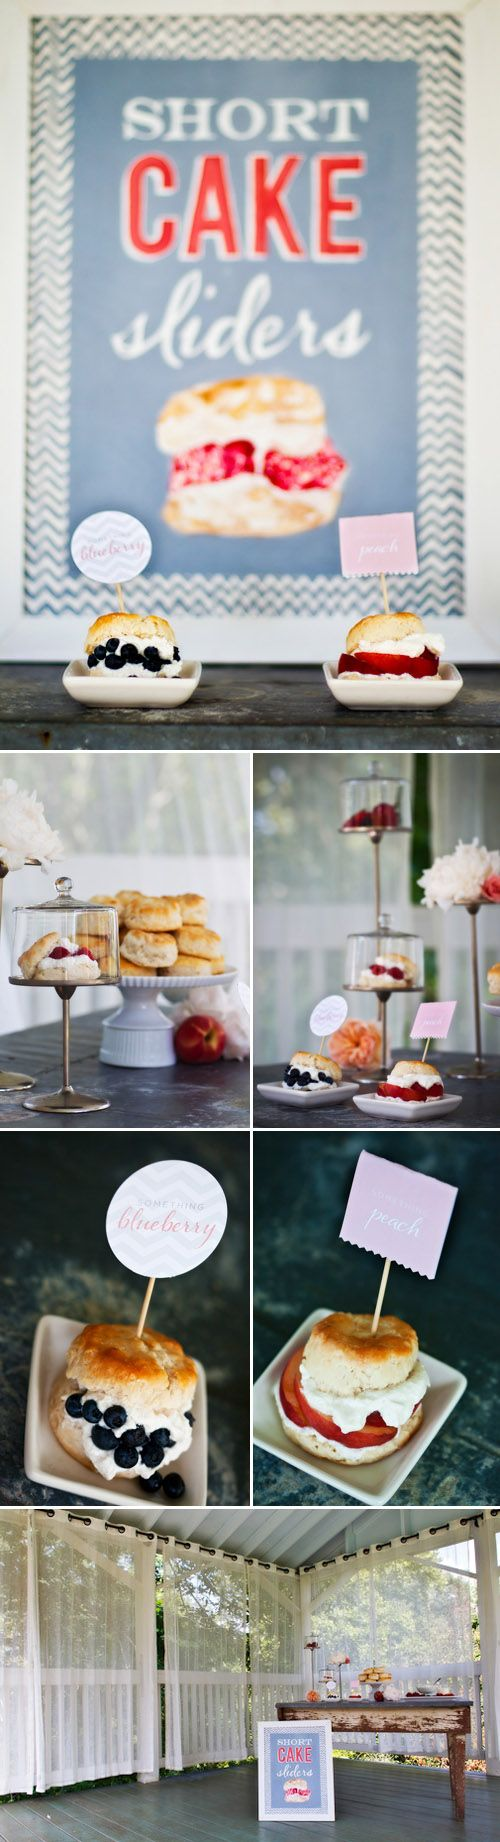 Short cake sliders! | Party Ideas | Pinterest